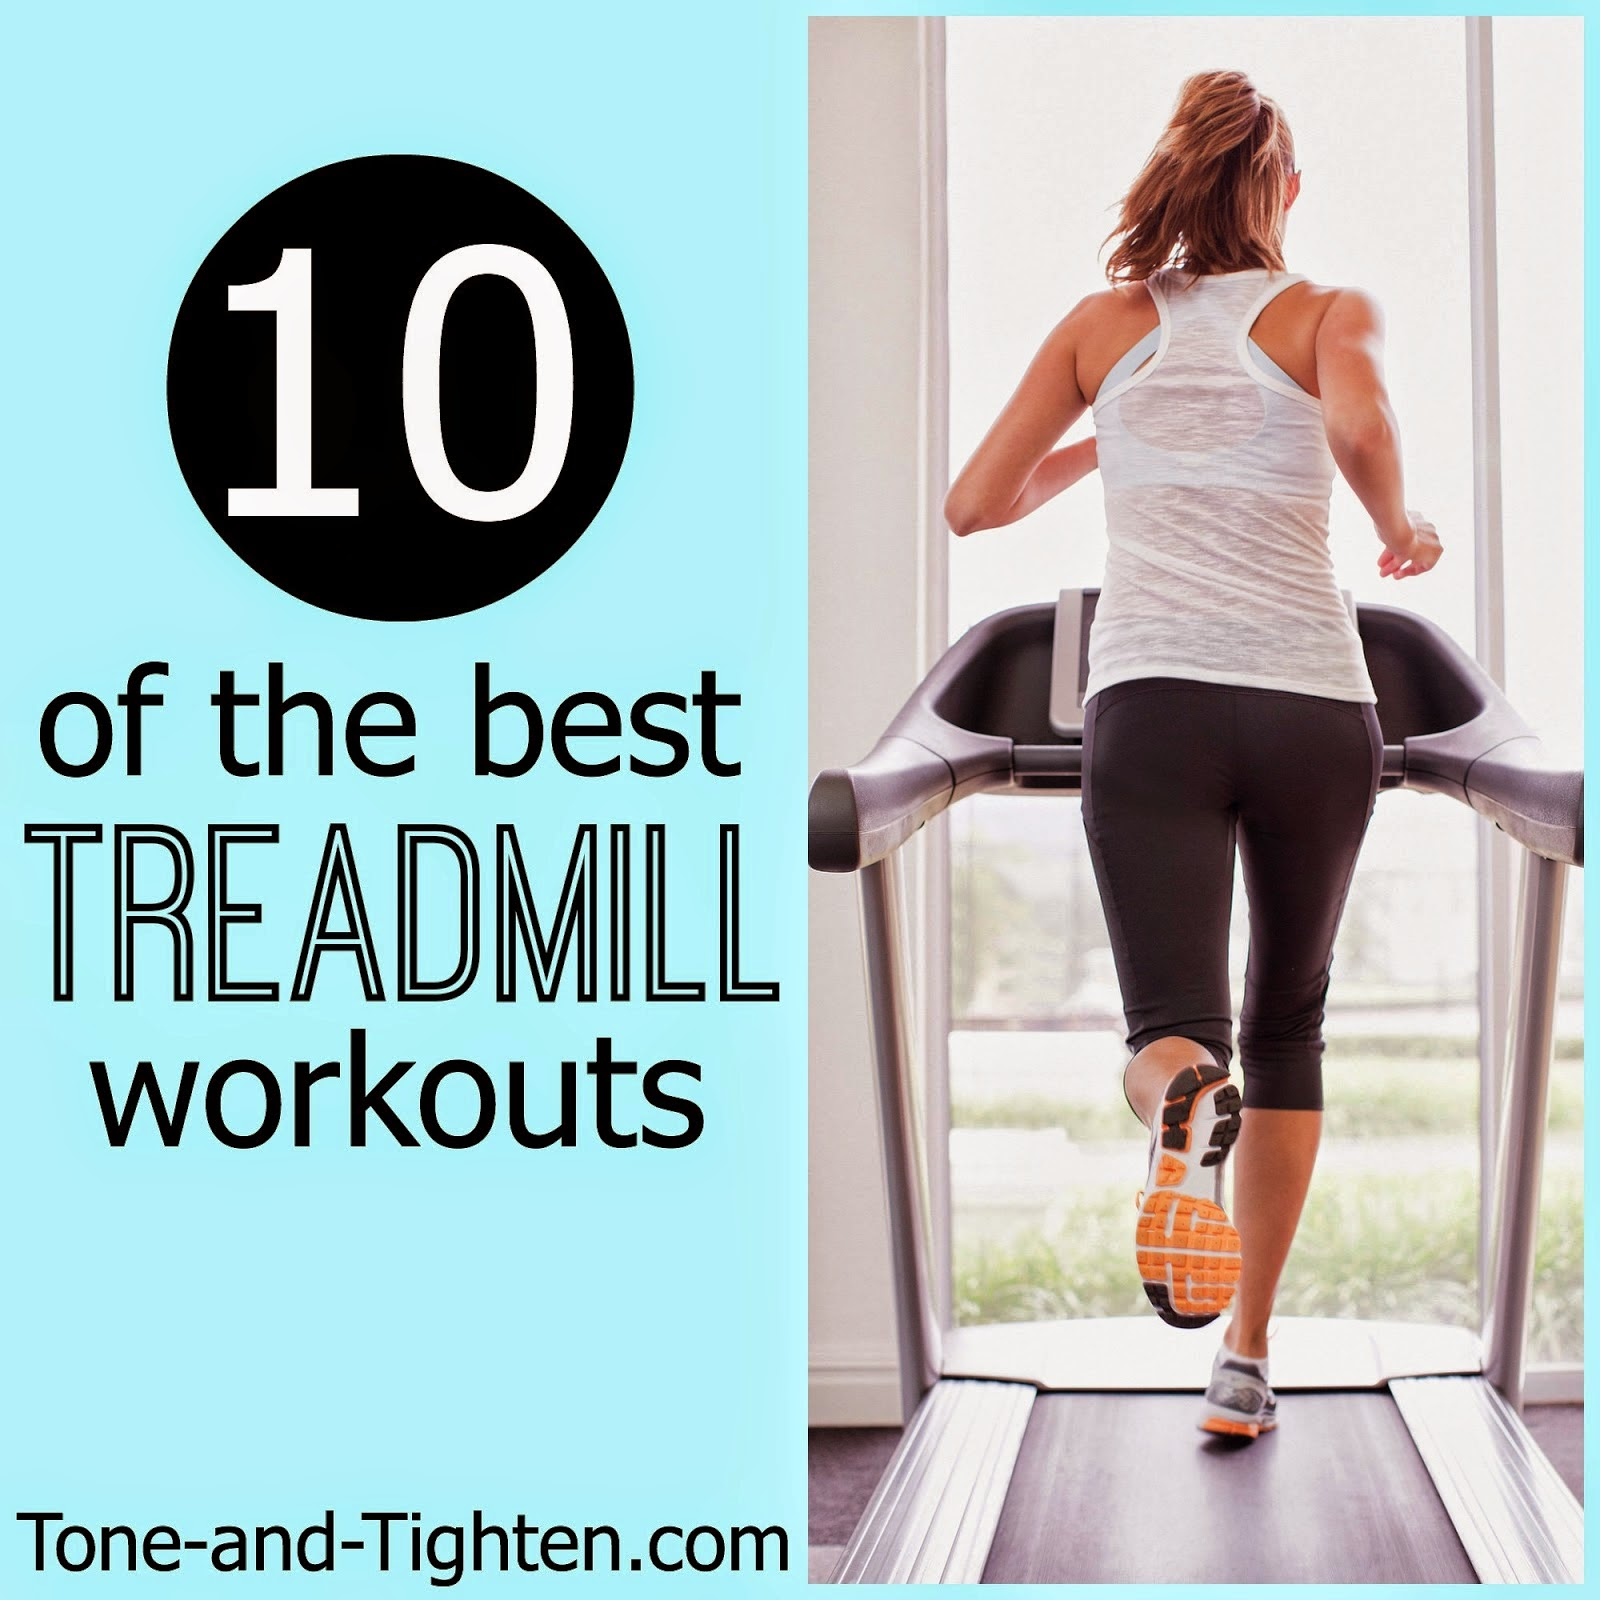 https://tone-and-tighten.com/2014/03/10-of-the-best-treadmill-workouts.html